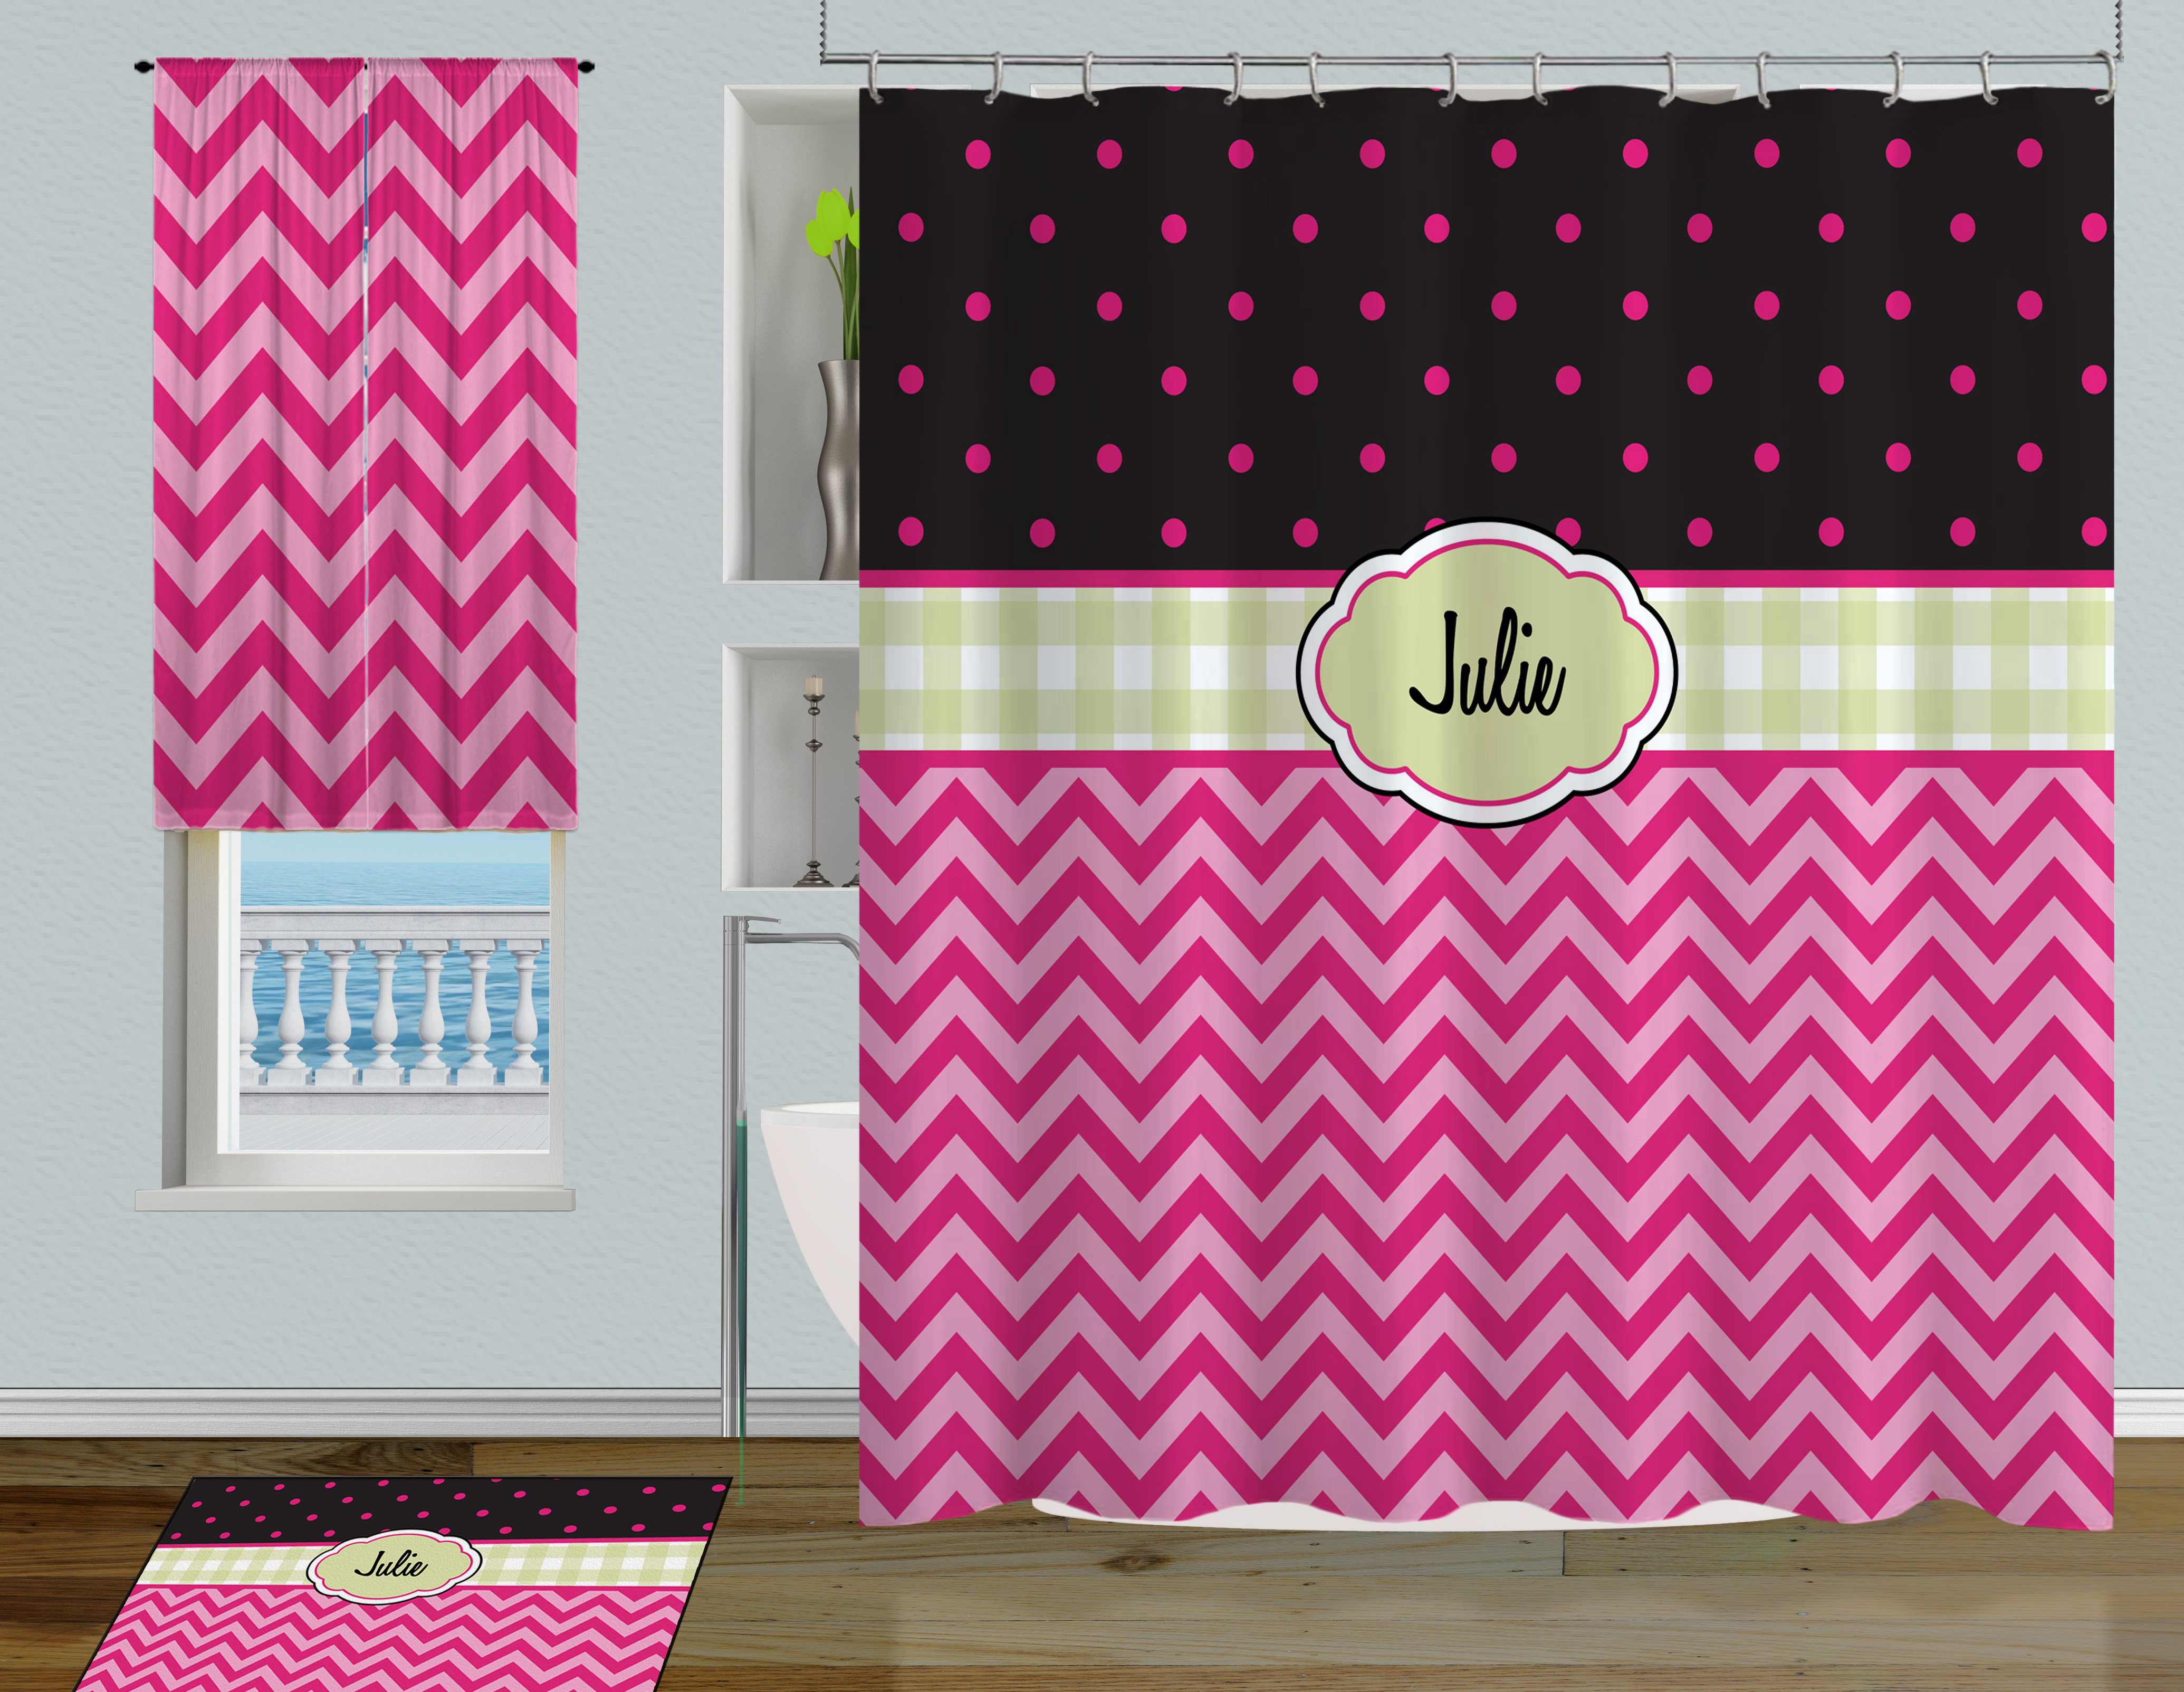 pink and green polka dot children s shower curtain with chevron printed pattern 73 eloquent innovations